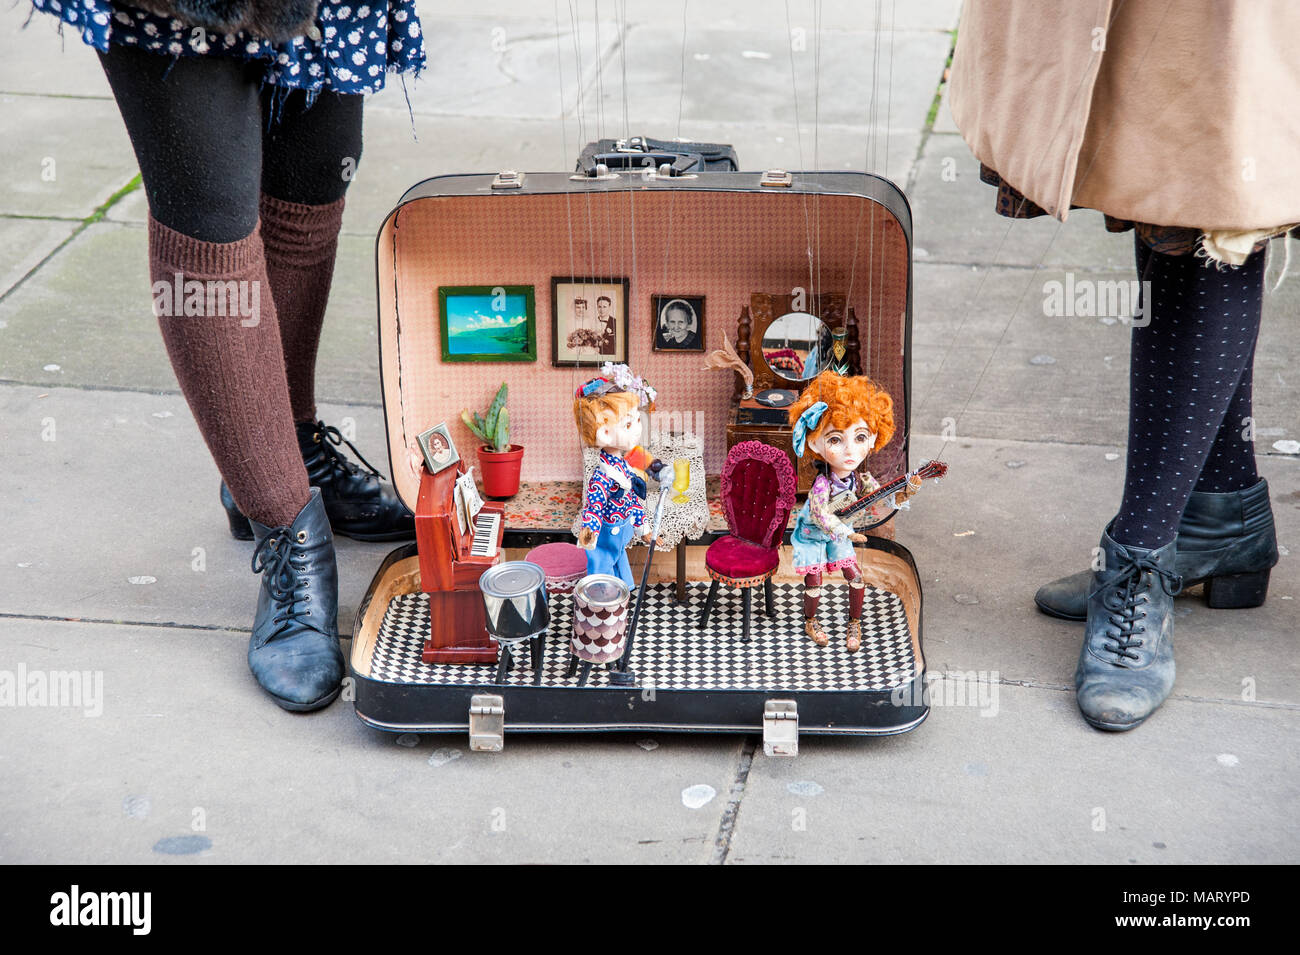 Buskers with marionettes, London, UK - Stock Image